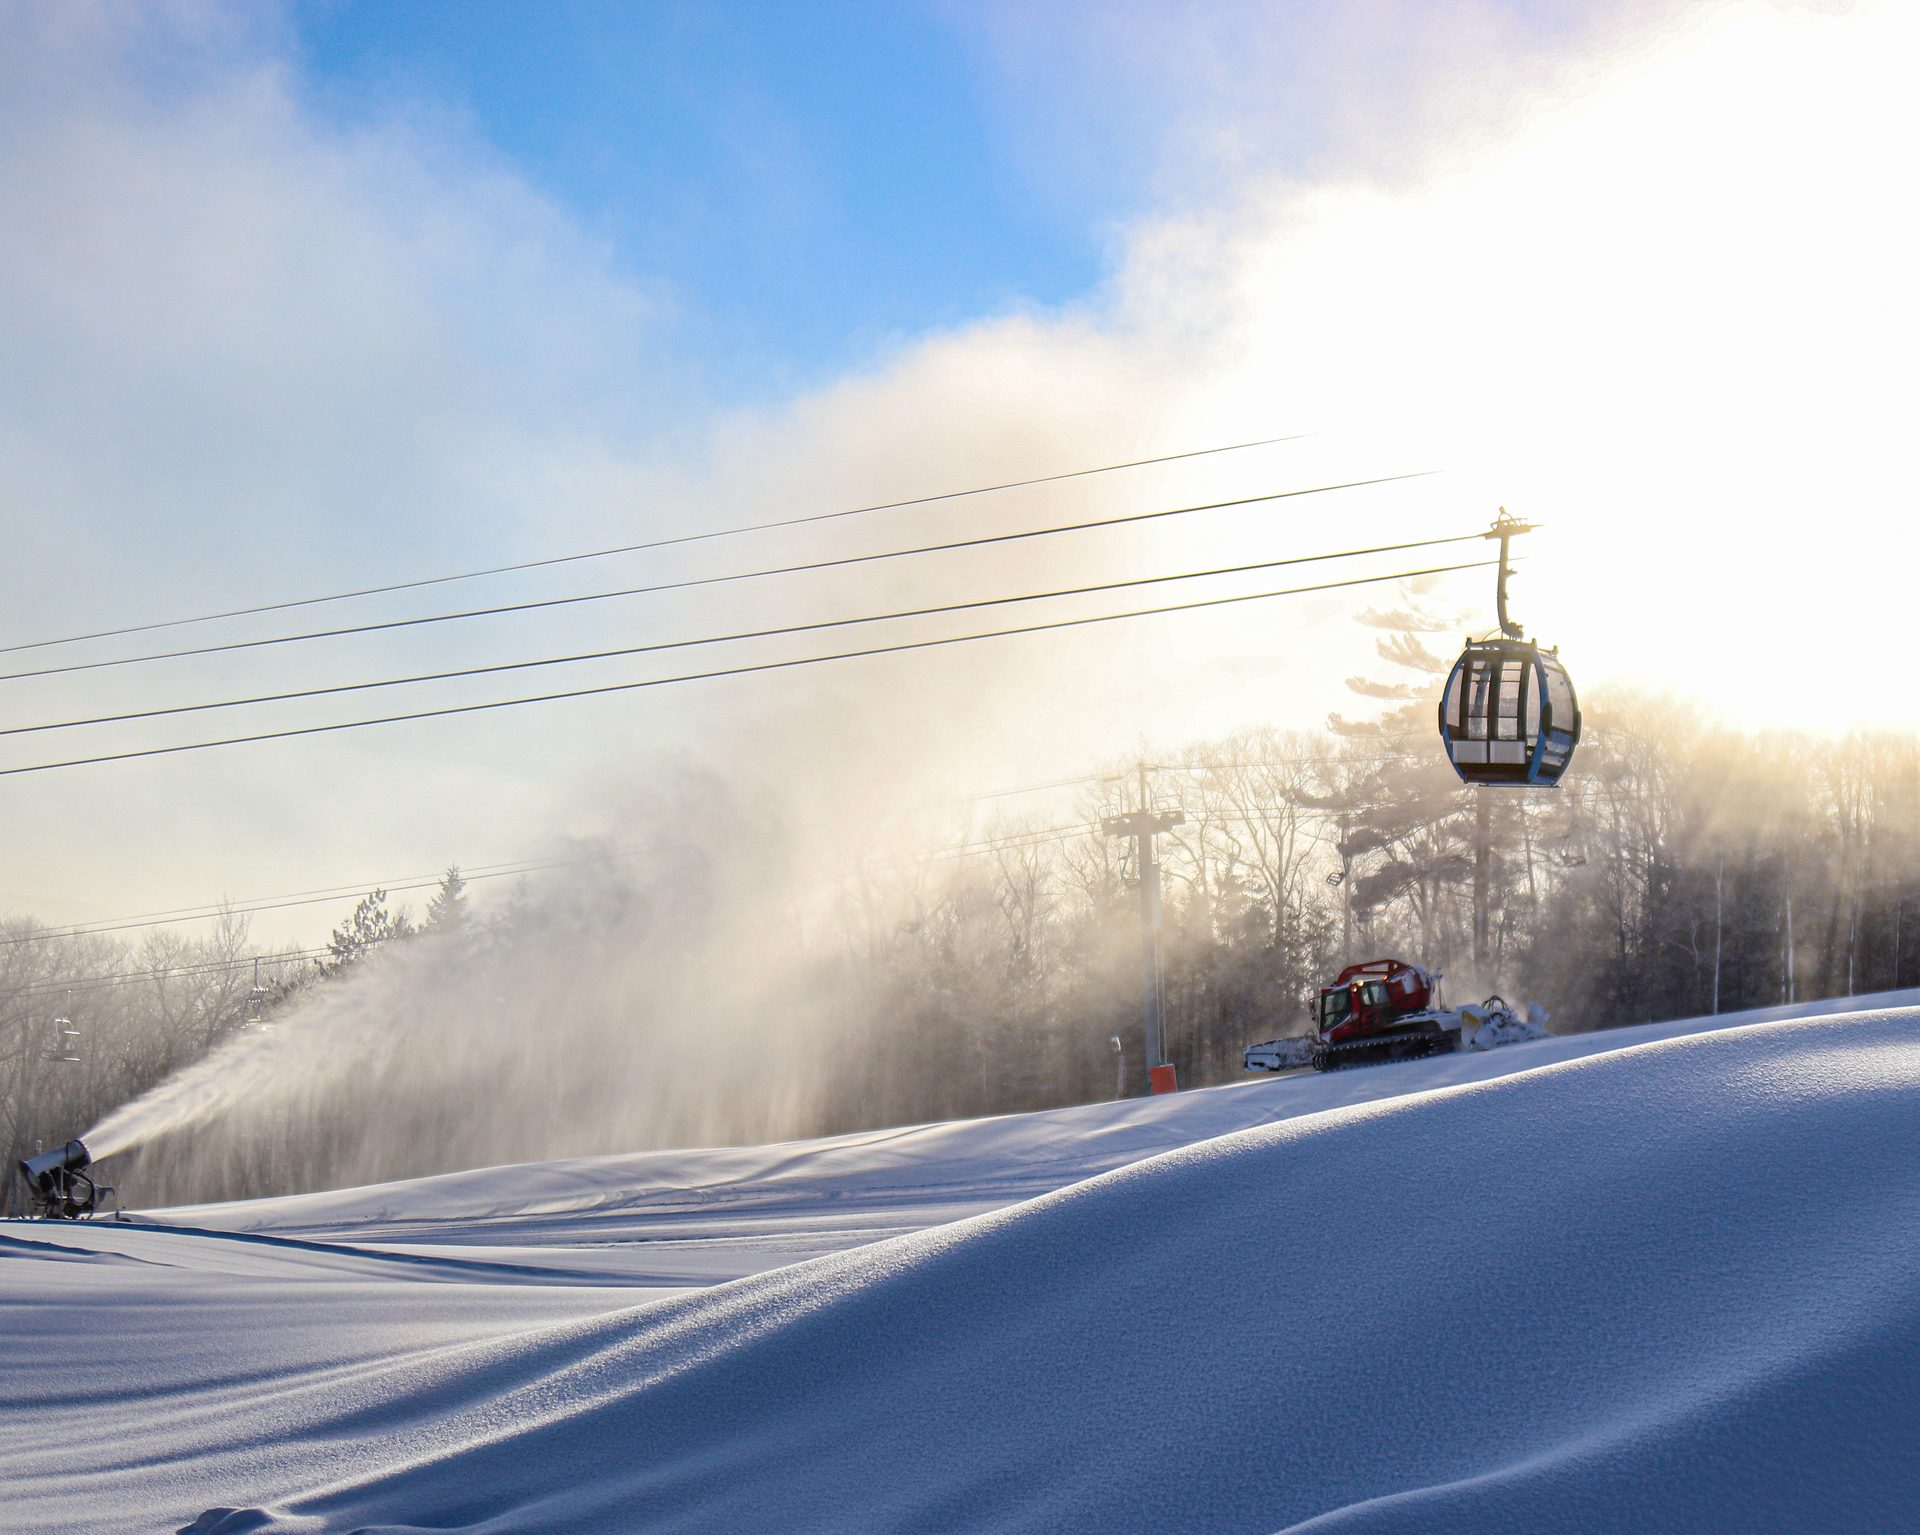 Snowmaking at Belleayre